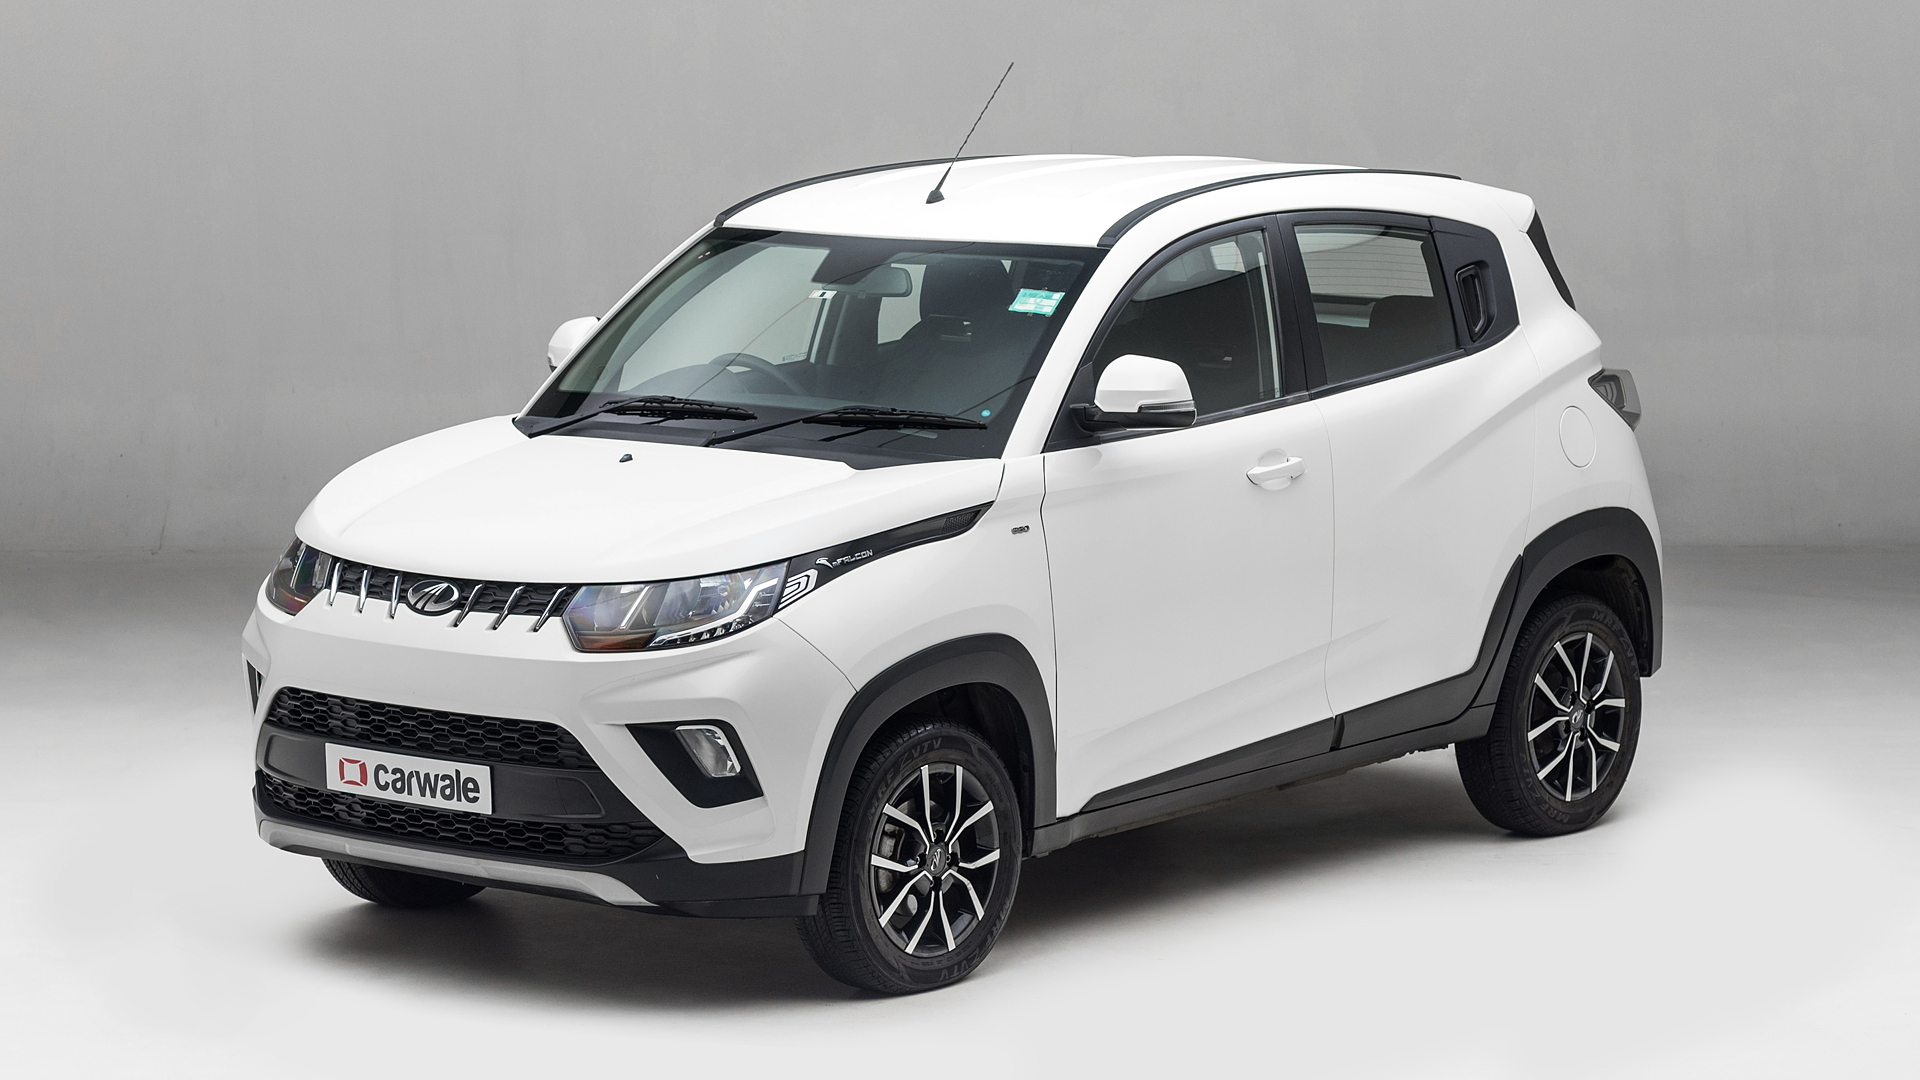 Mahindra KUV100 NXT Images - Interior & Exterior Photo Gallery [100+  Images] - CarWale